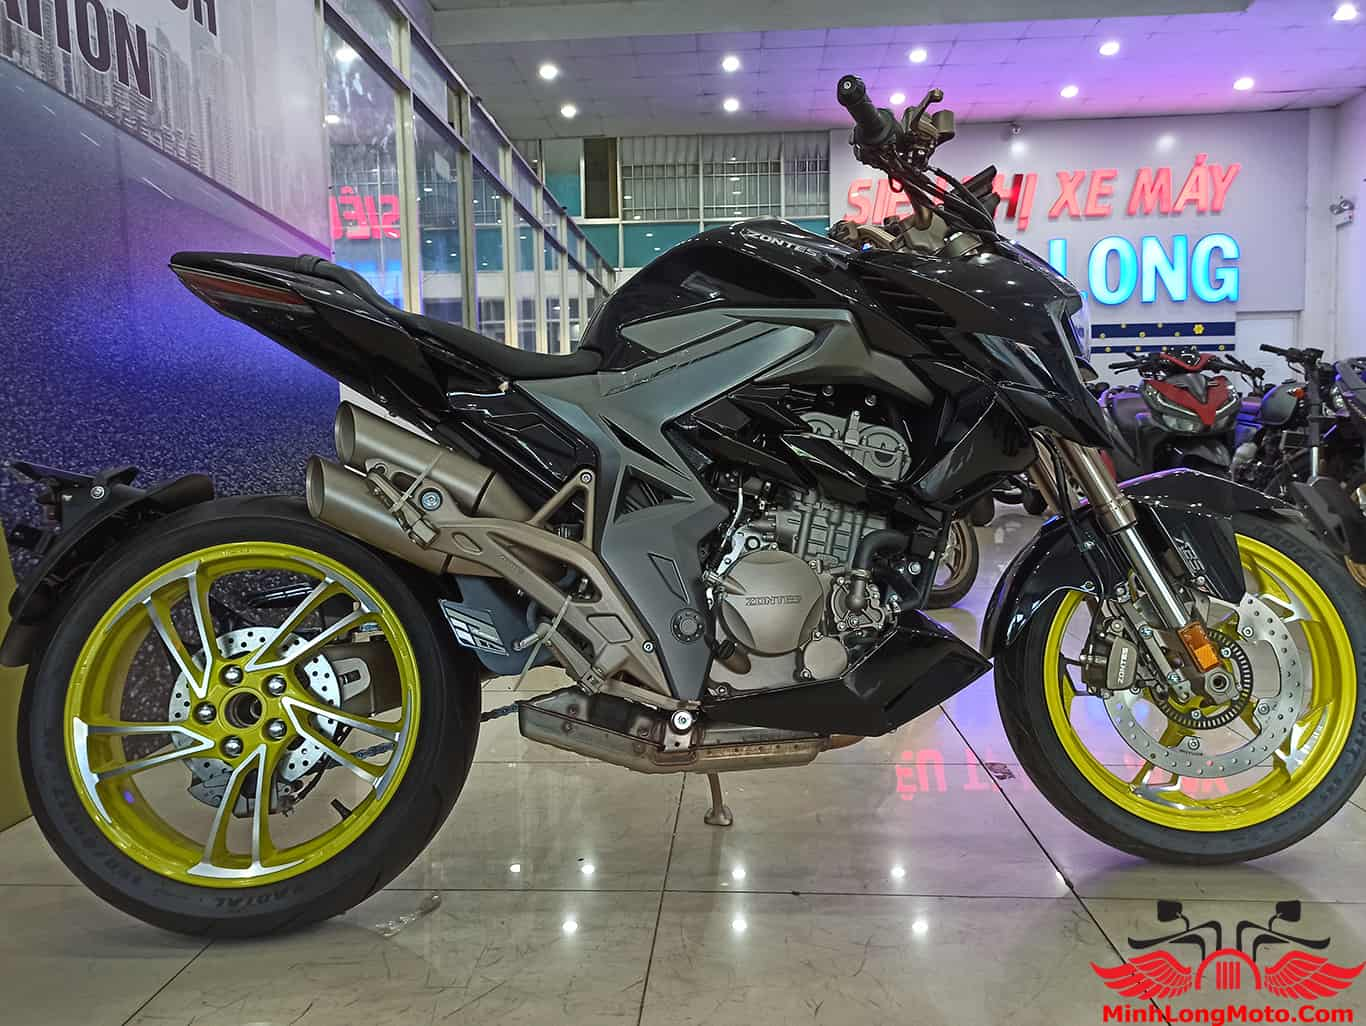 Thiết kế xe Zontes 310 R1